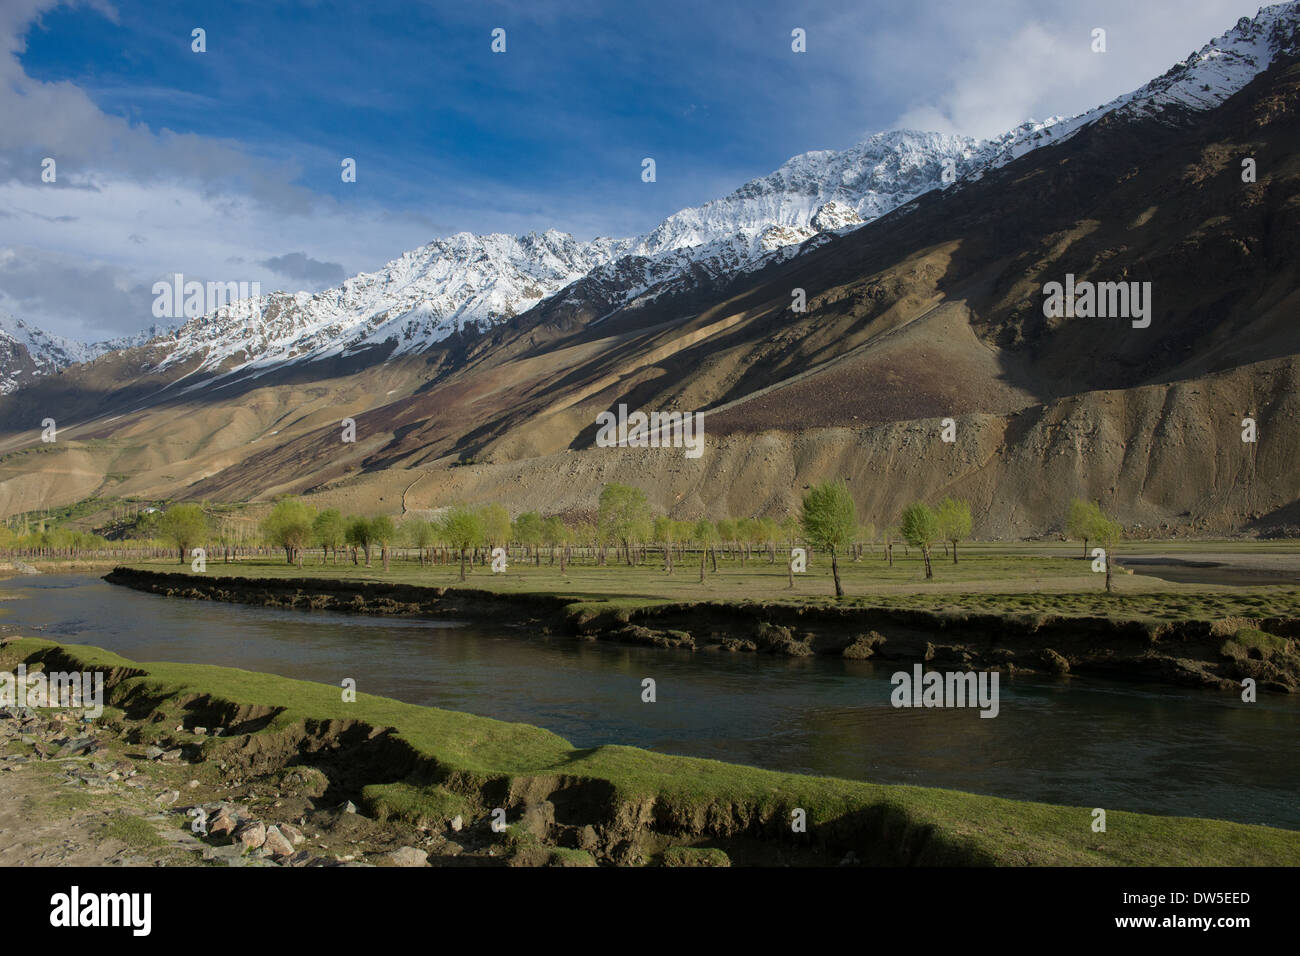 Snow-capped mountains rising above the Ghizar River (Gilgit River) near Terich, seen from the Shandur-Gilgit Road, near the Shandur Pass, Gilgit-Baltistan, Pakistan - Stock Image